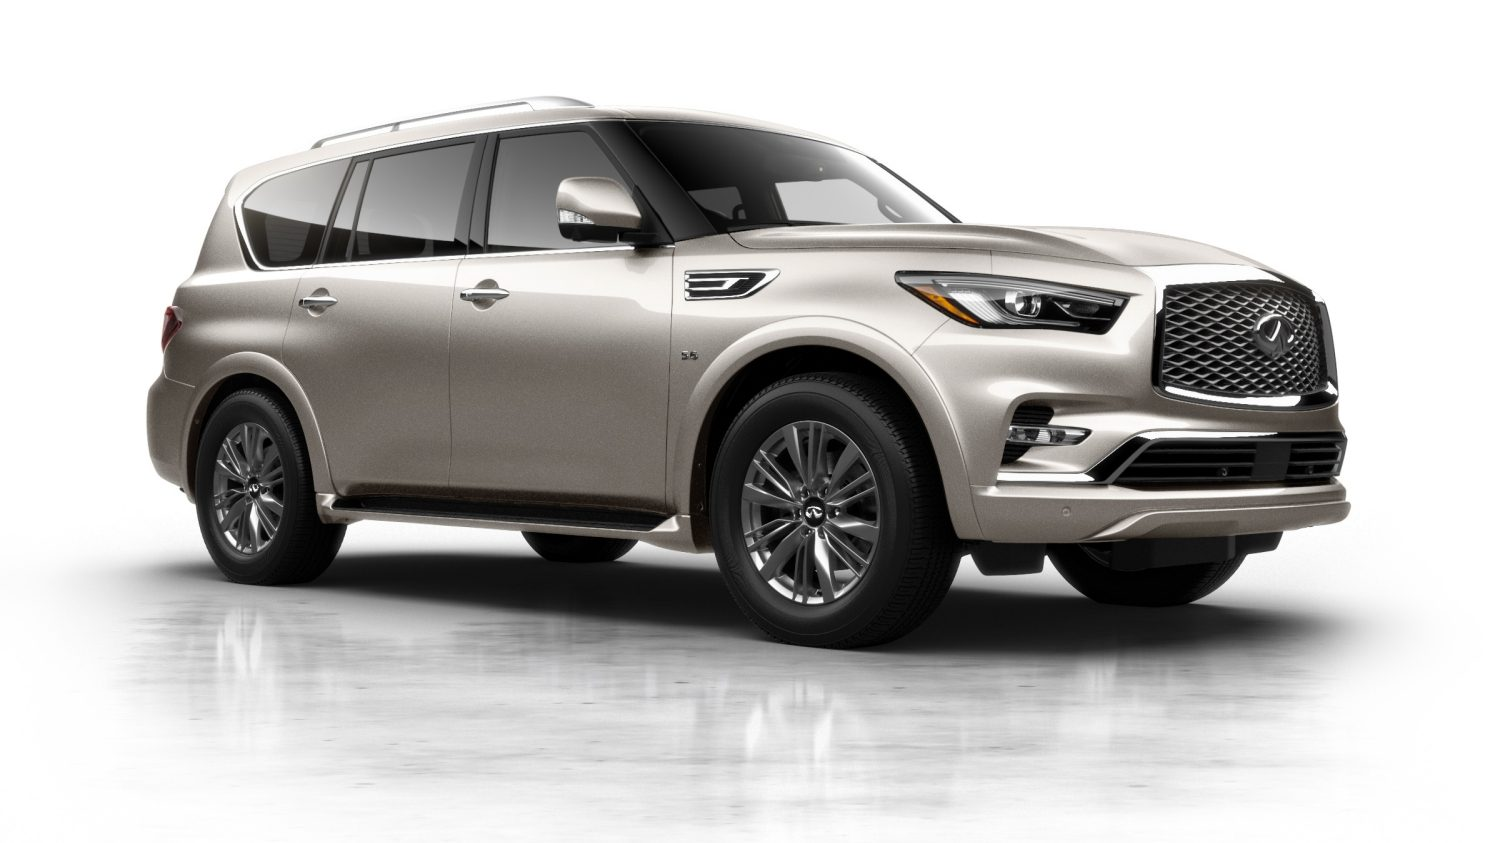 2018 INFINITI QX80 SUV | Find Your QX80 5.6 V8